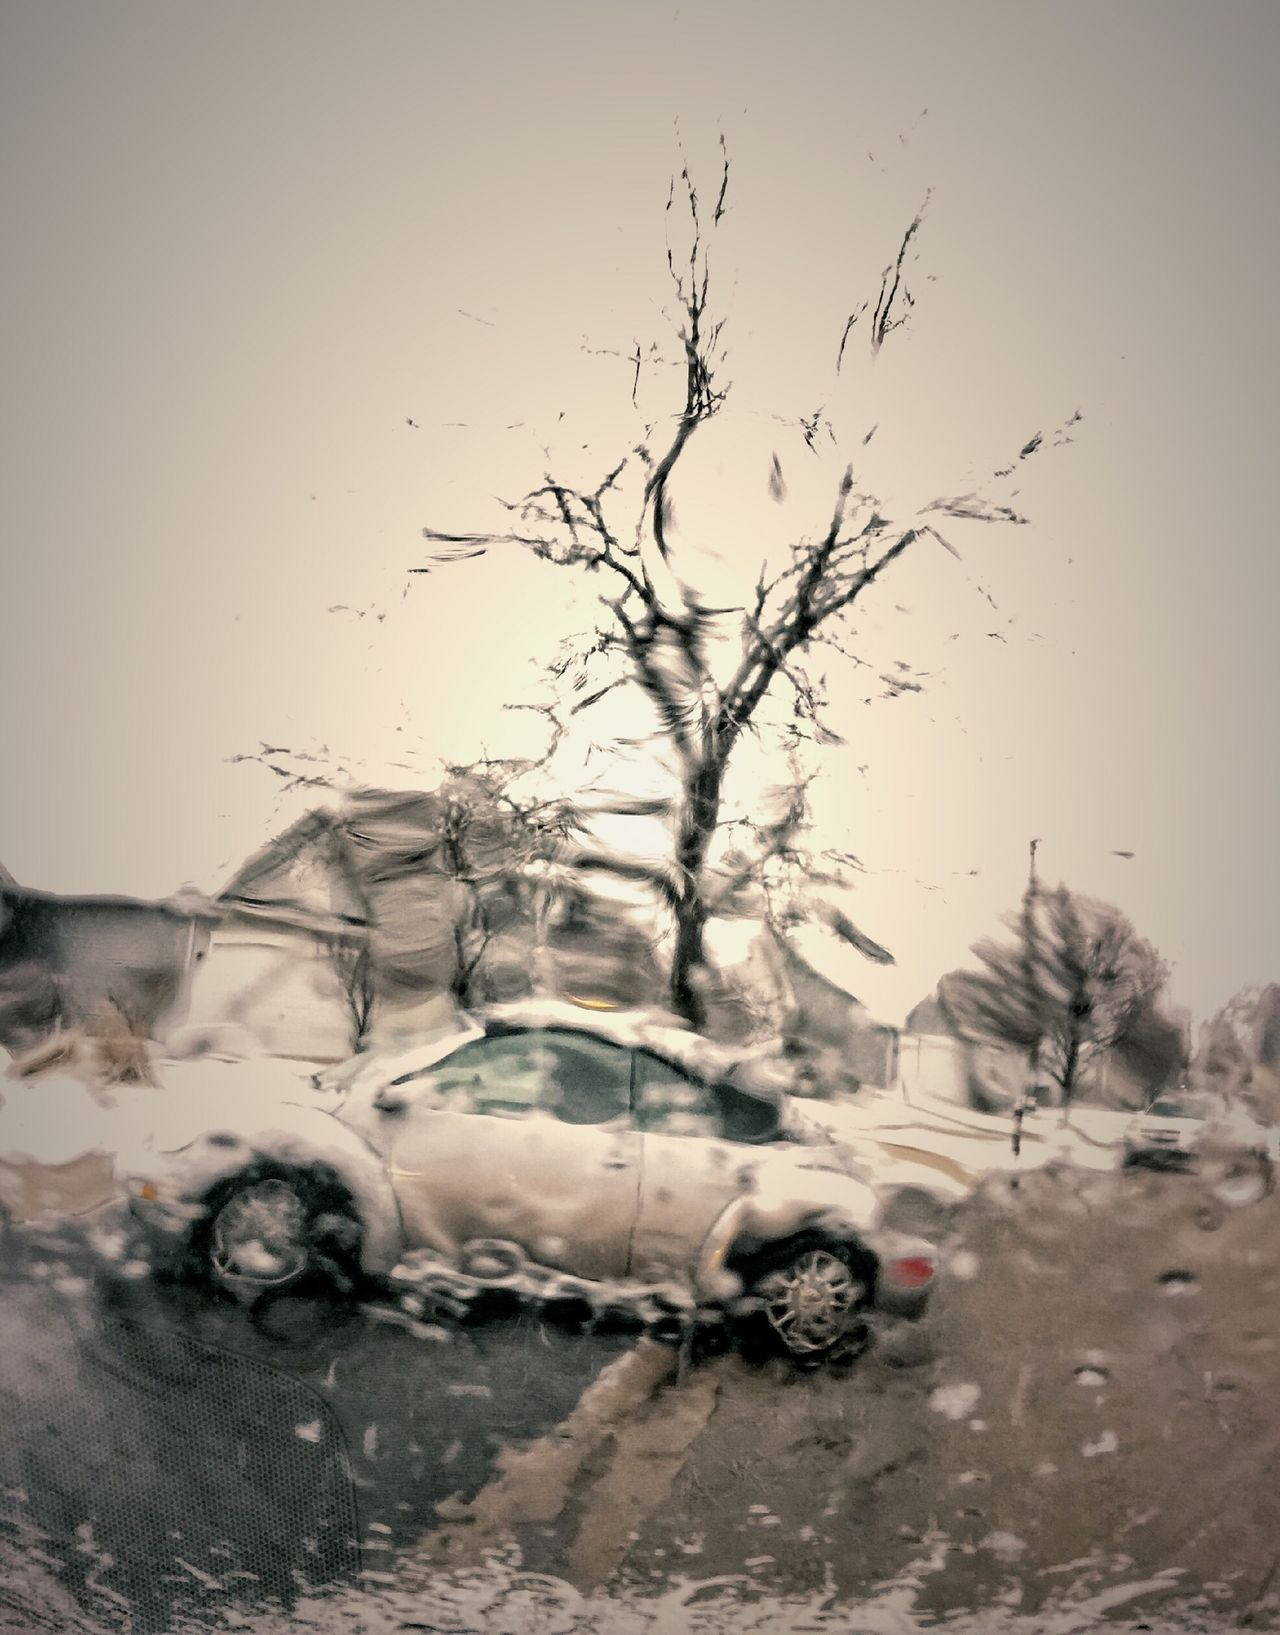 Driving Rainy Day Car Wolsvagen IPhoneography Gray Distortion Things In Motion Abstract Photography In Motion Urban Spring Fever Iphonephotography Traveling Home For The Holidays Oswego, IL Resist